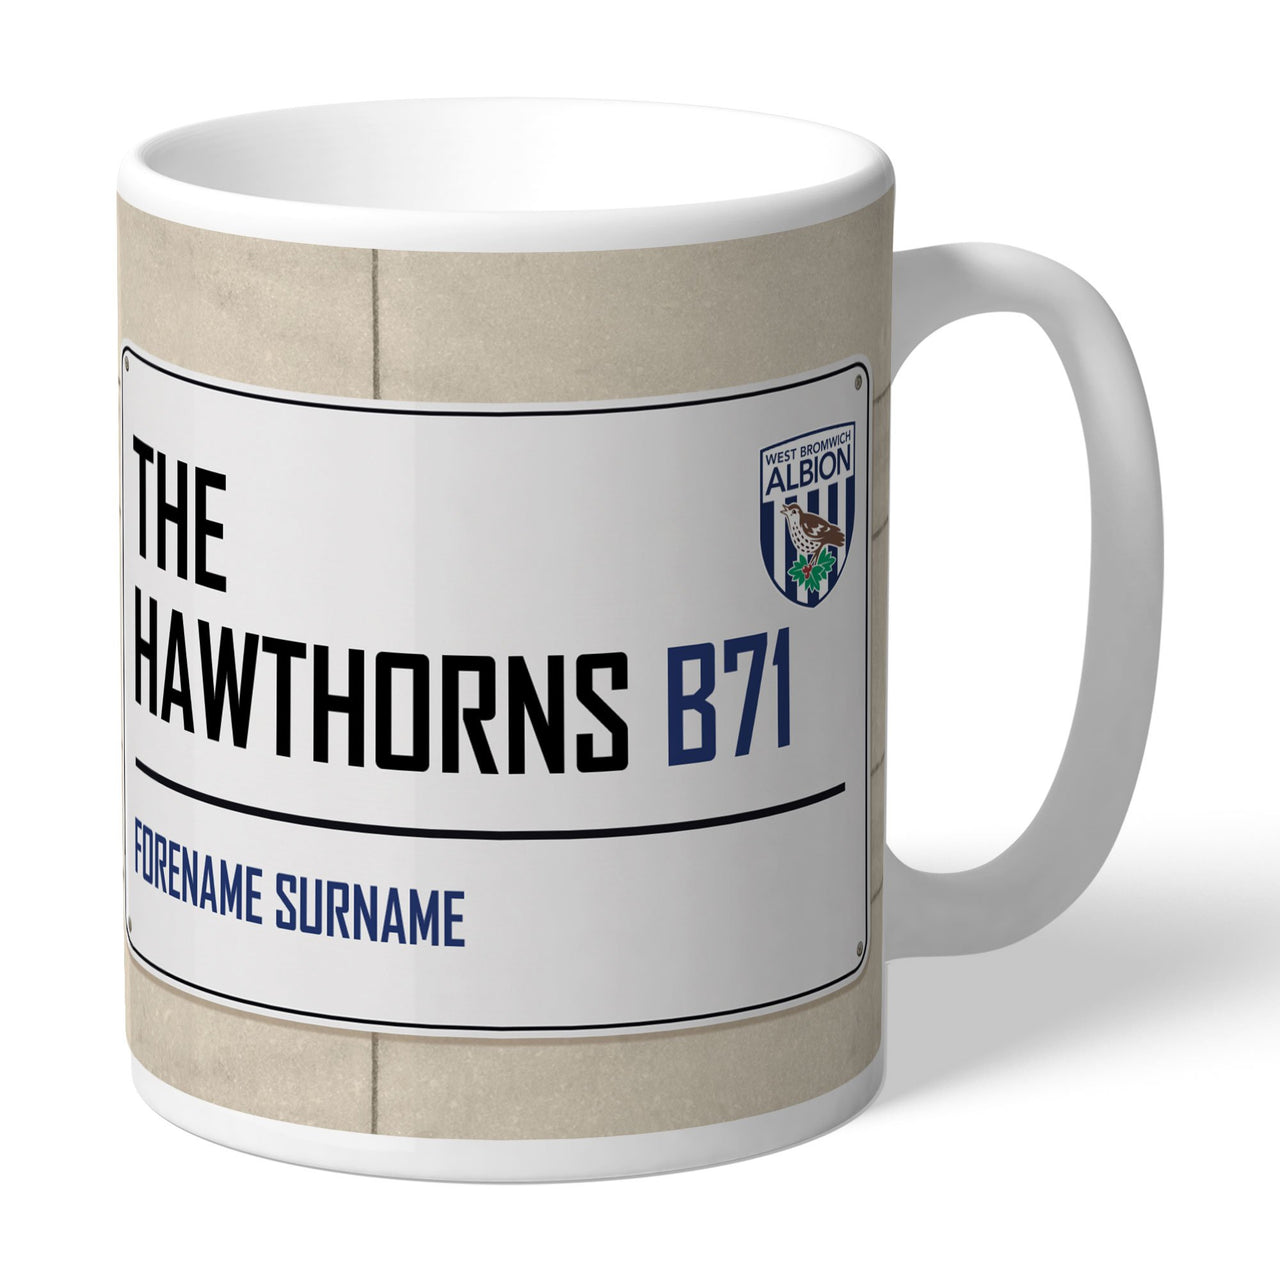 West Bromwich Albion FC Street Sign Mugs, Gifts